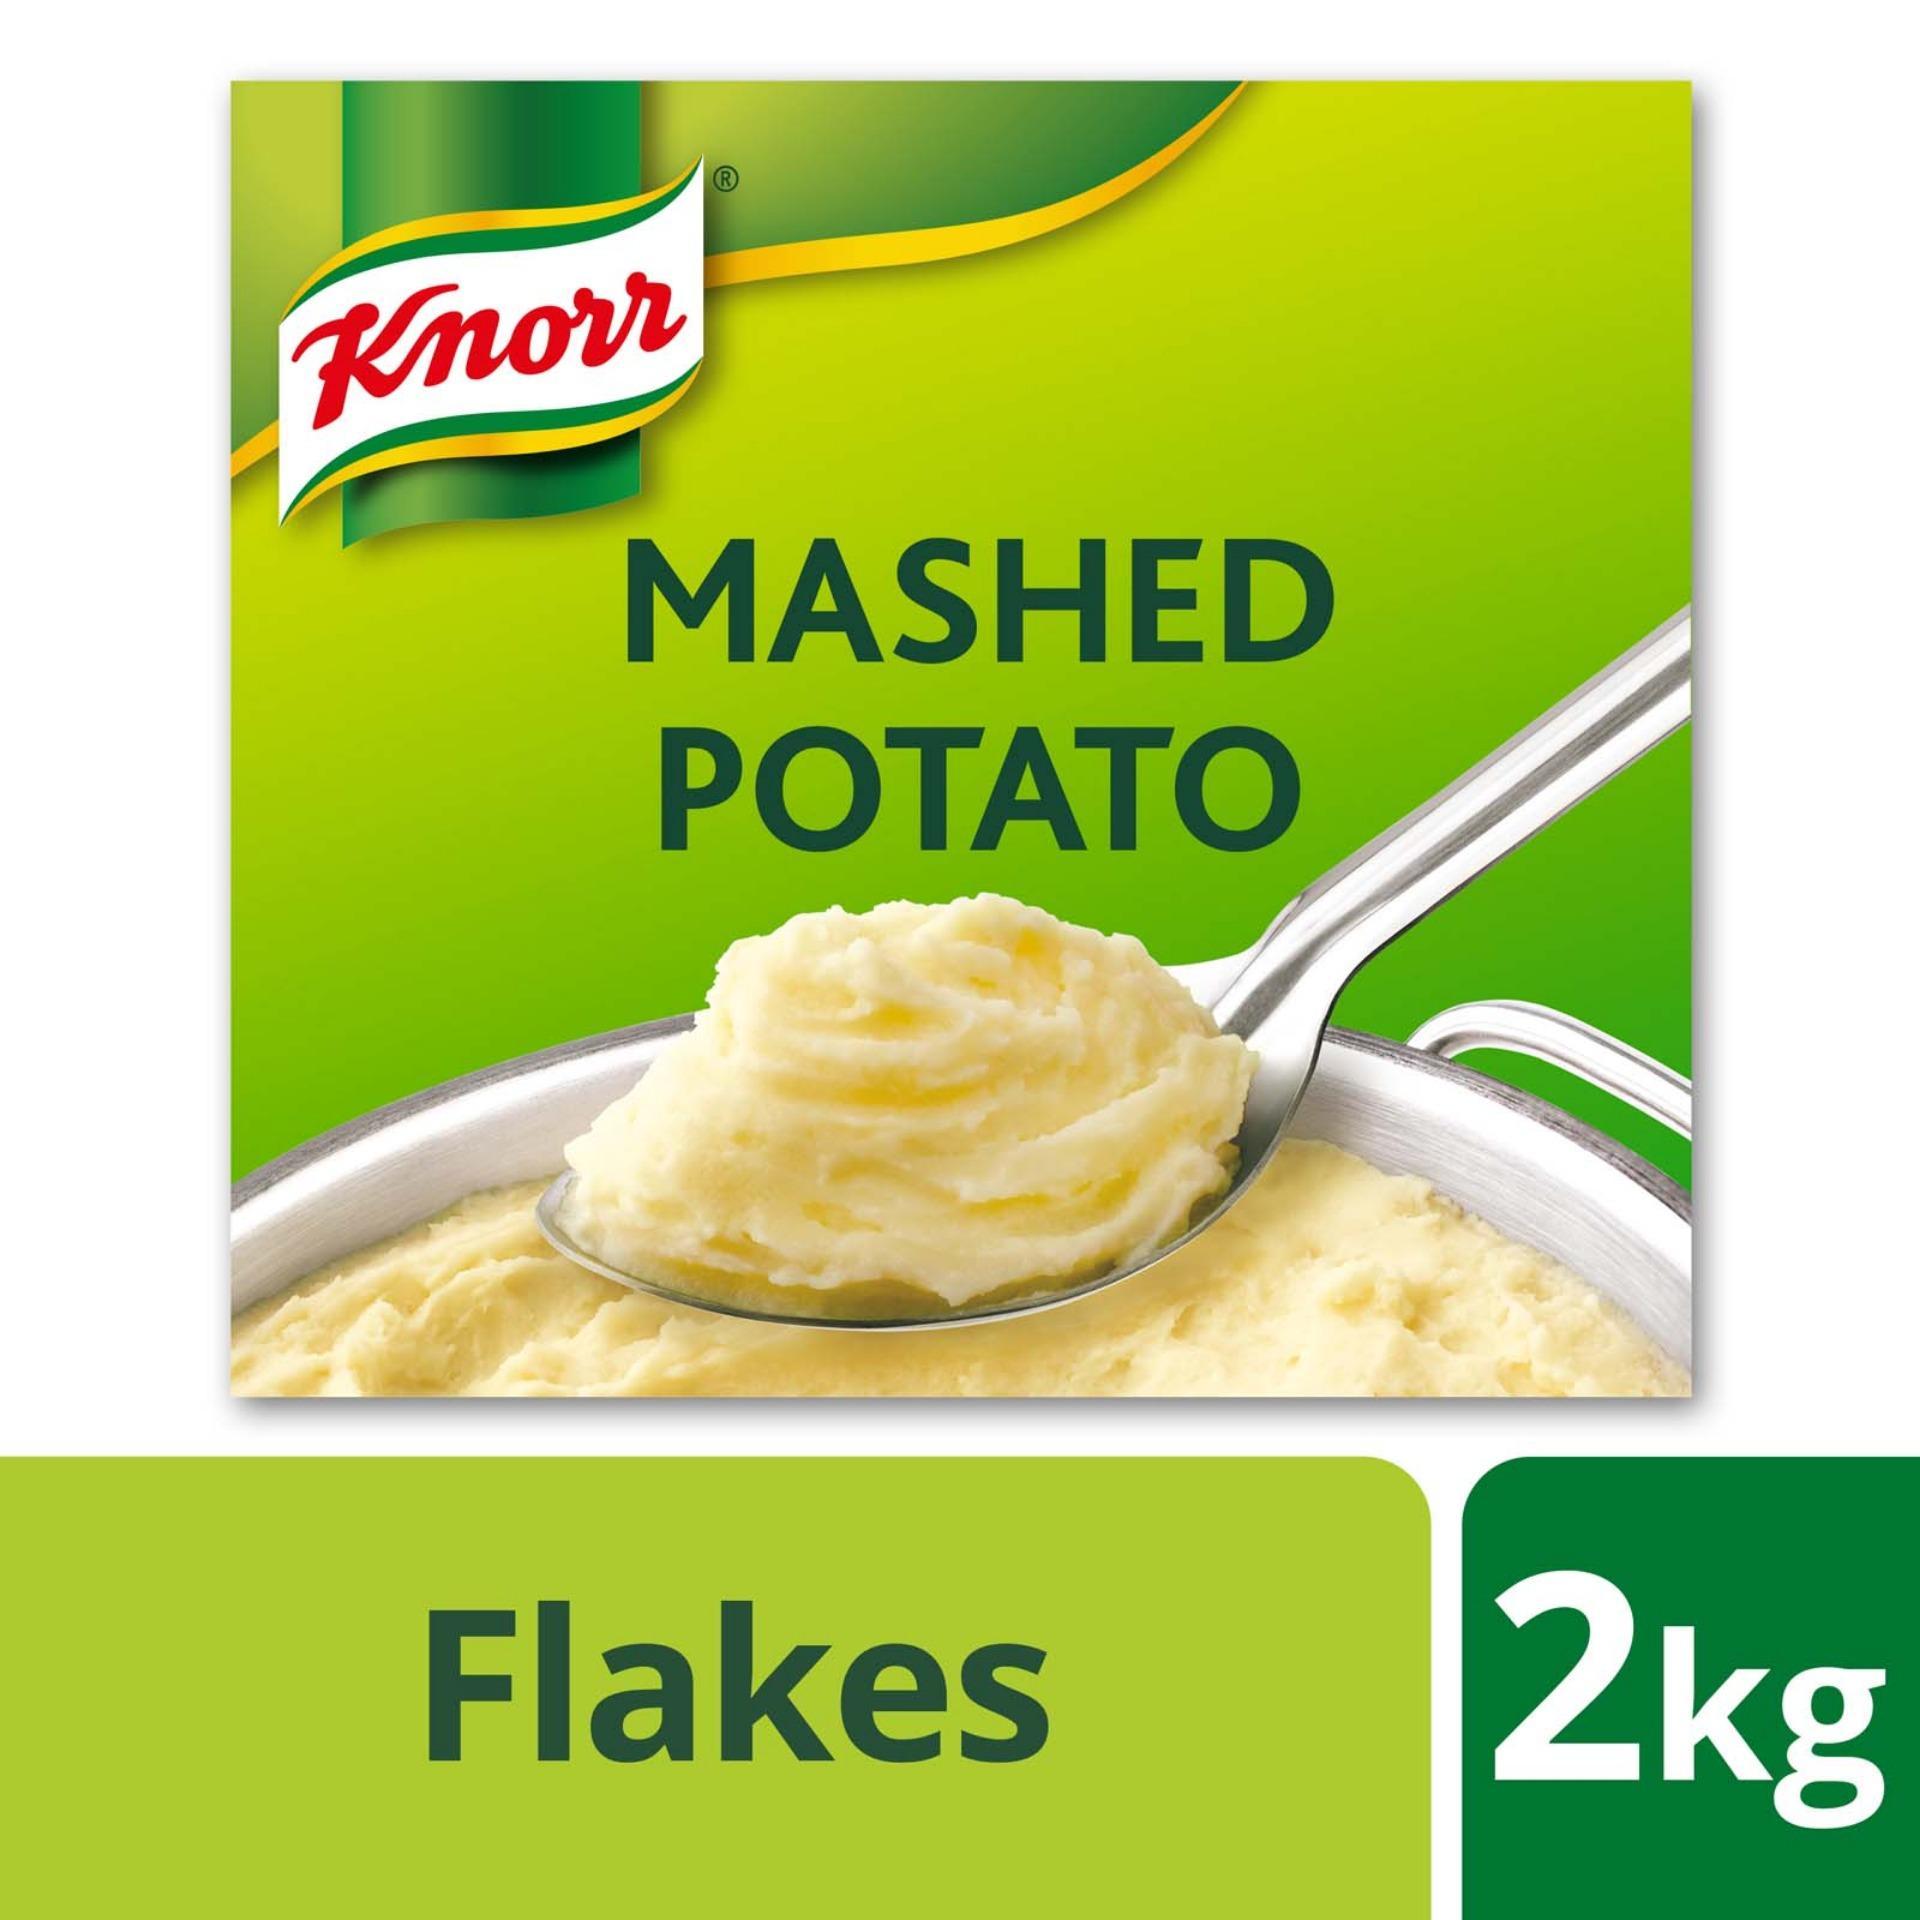 Mashed Potato Knorr 2Kg In Stock